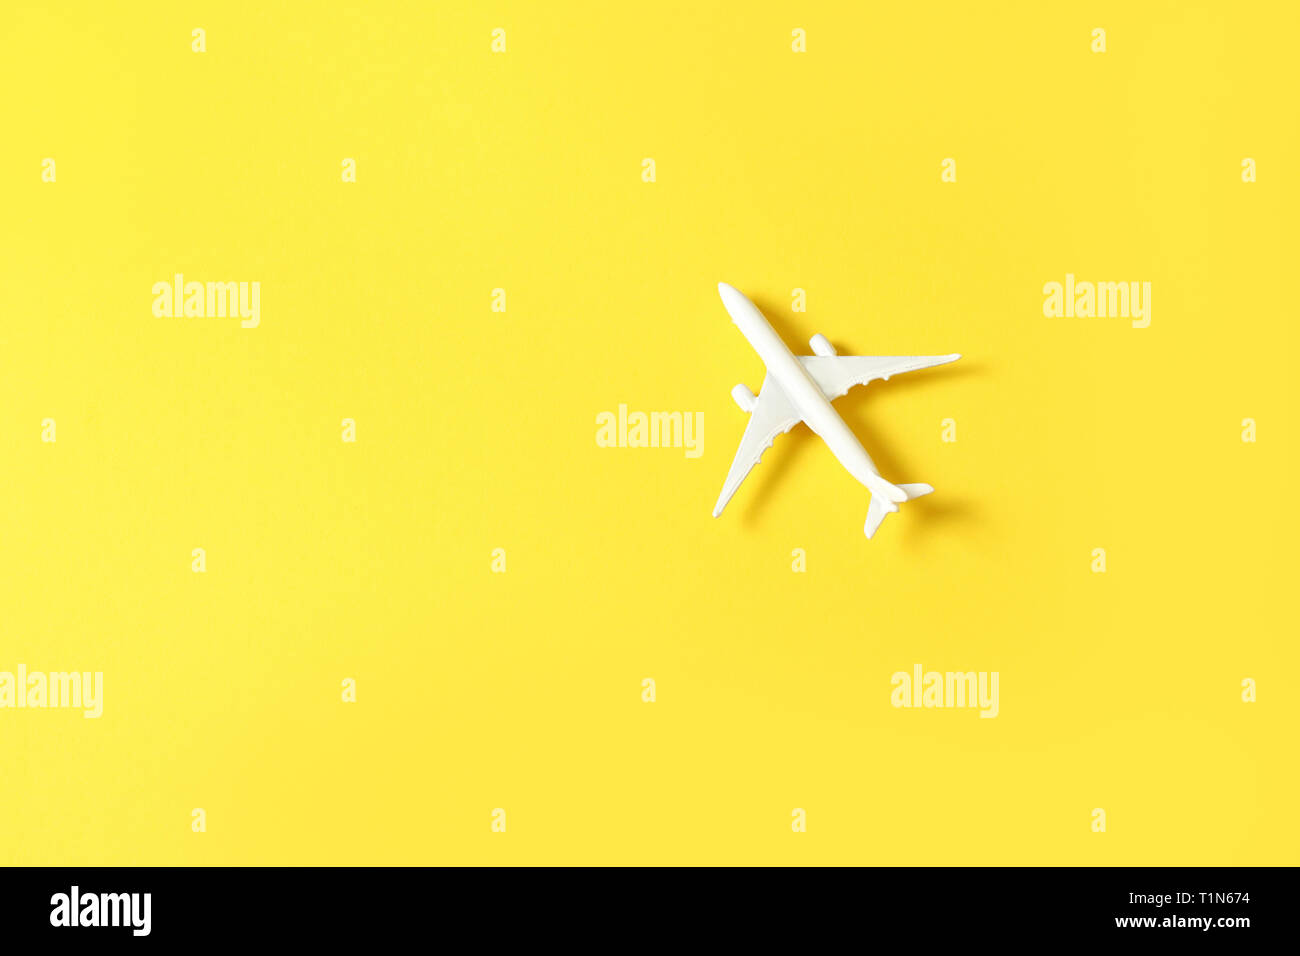 White toy airplane on a yellow background with copy space - Stock Image